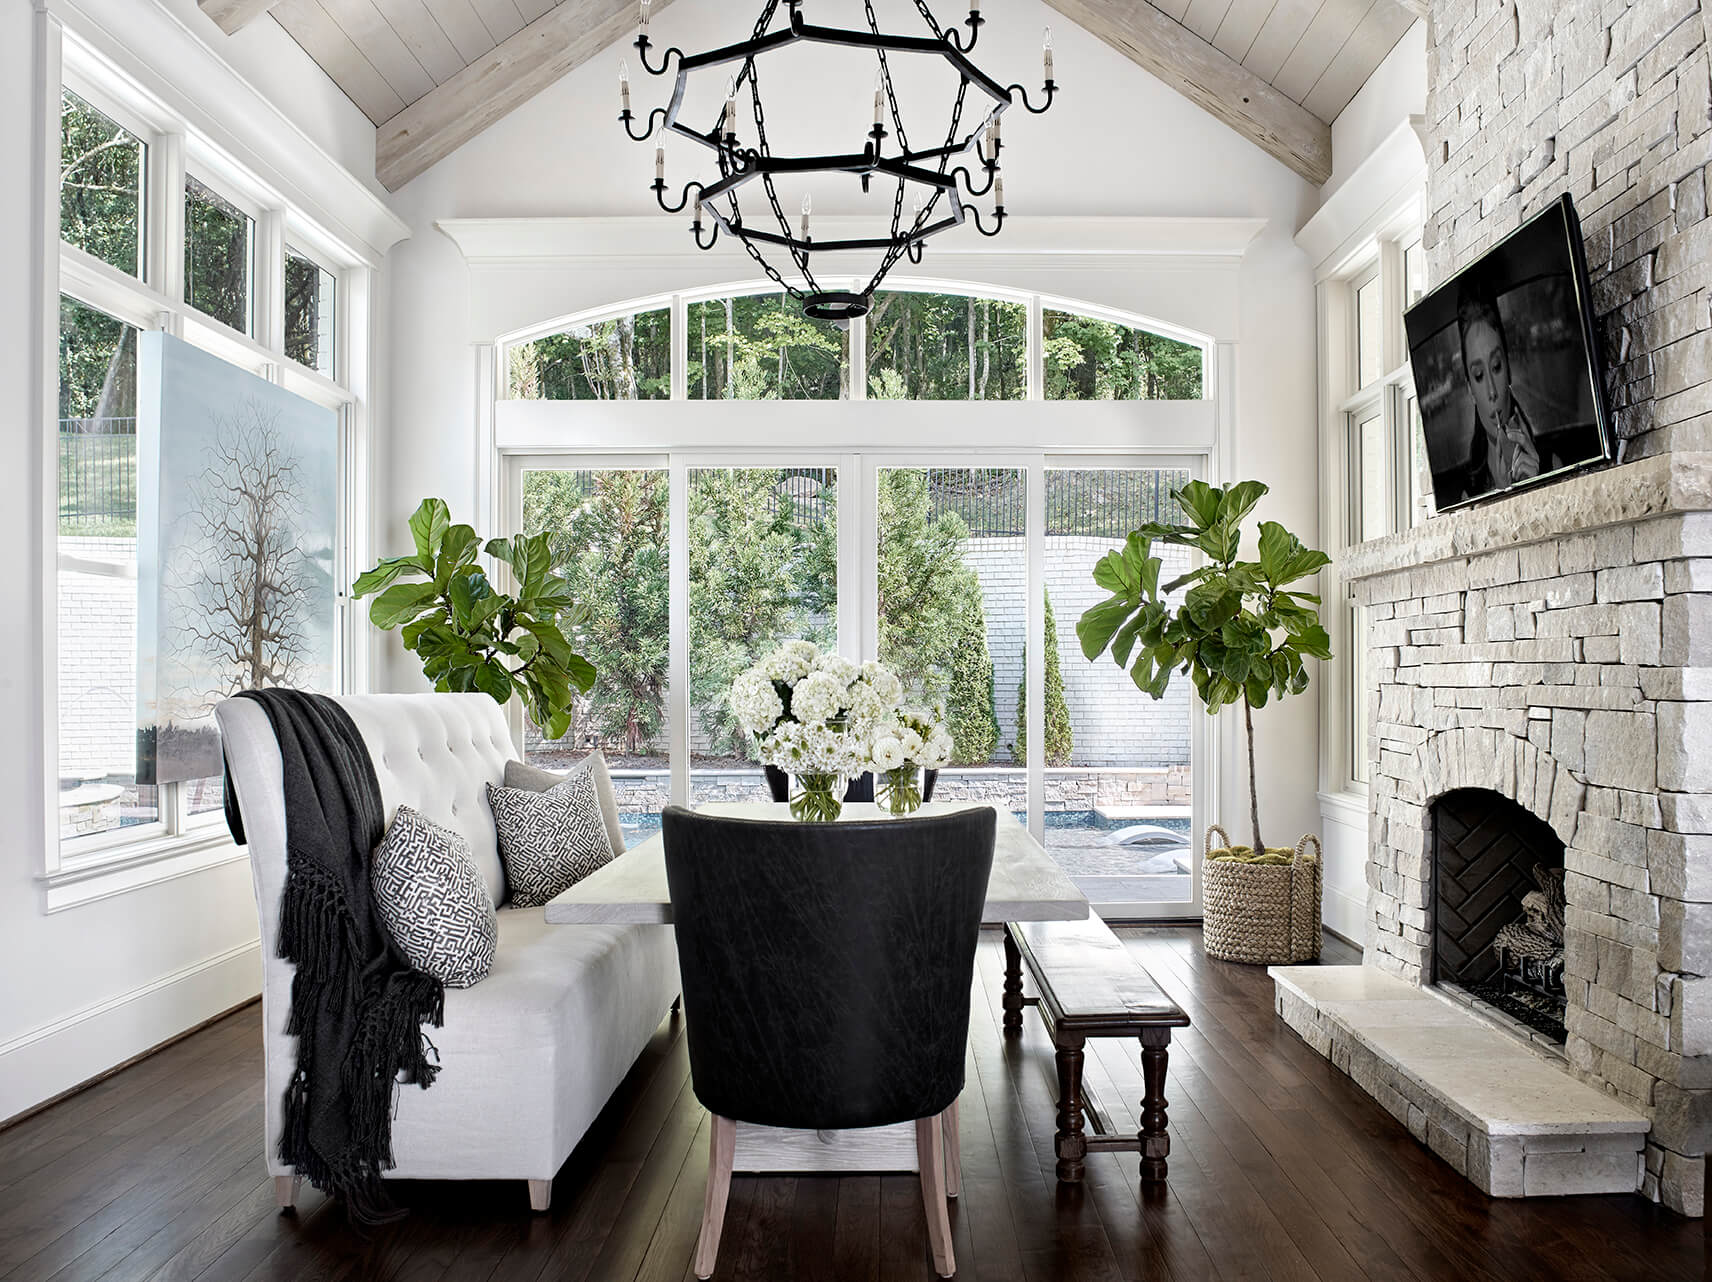 Dining area with stone fireplace and white and black furniture - Rustic Contemporary Bureau Interior Design Nashville TN